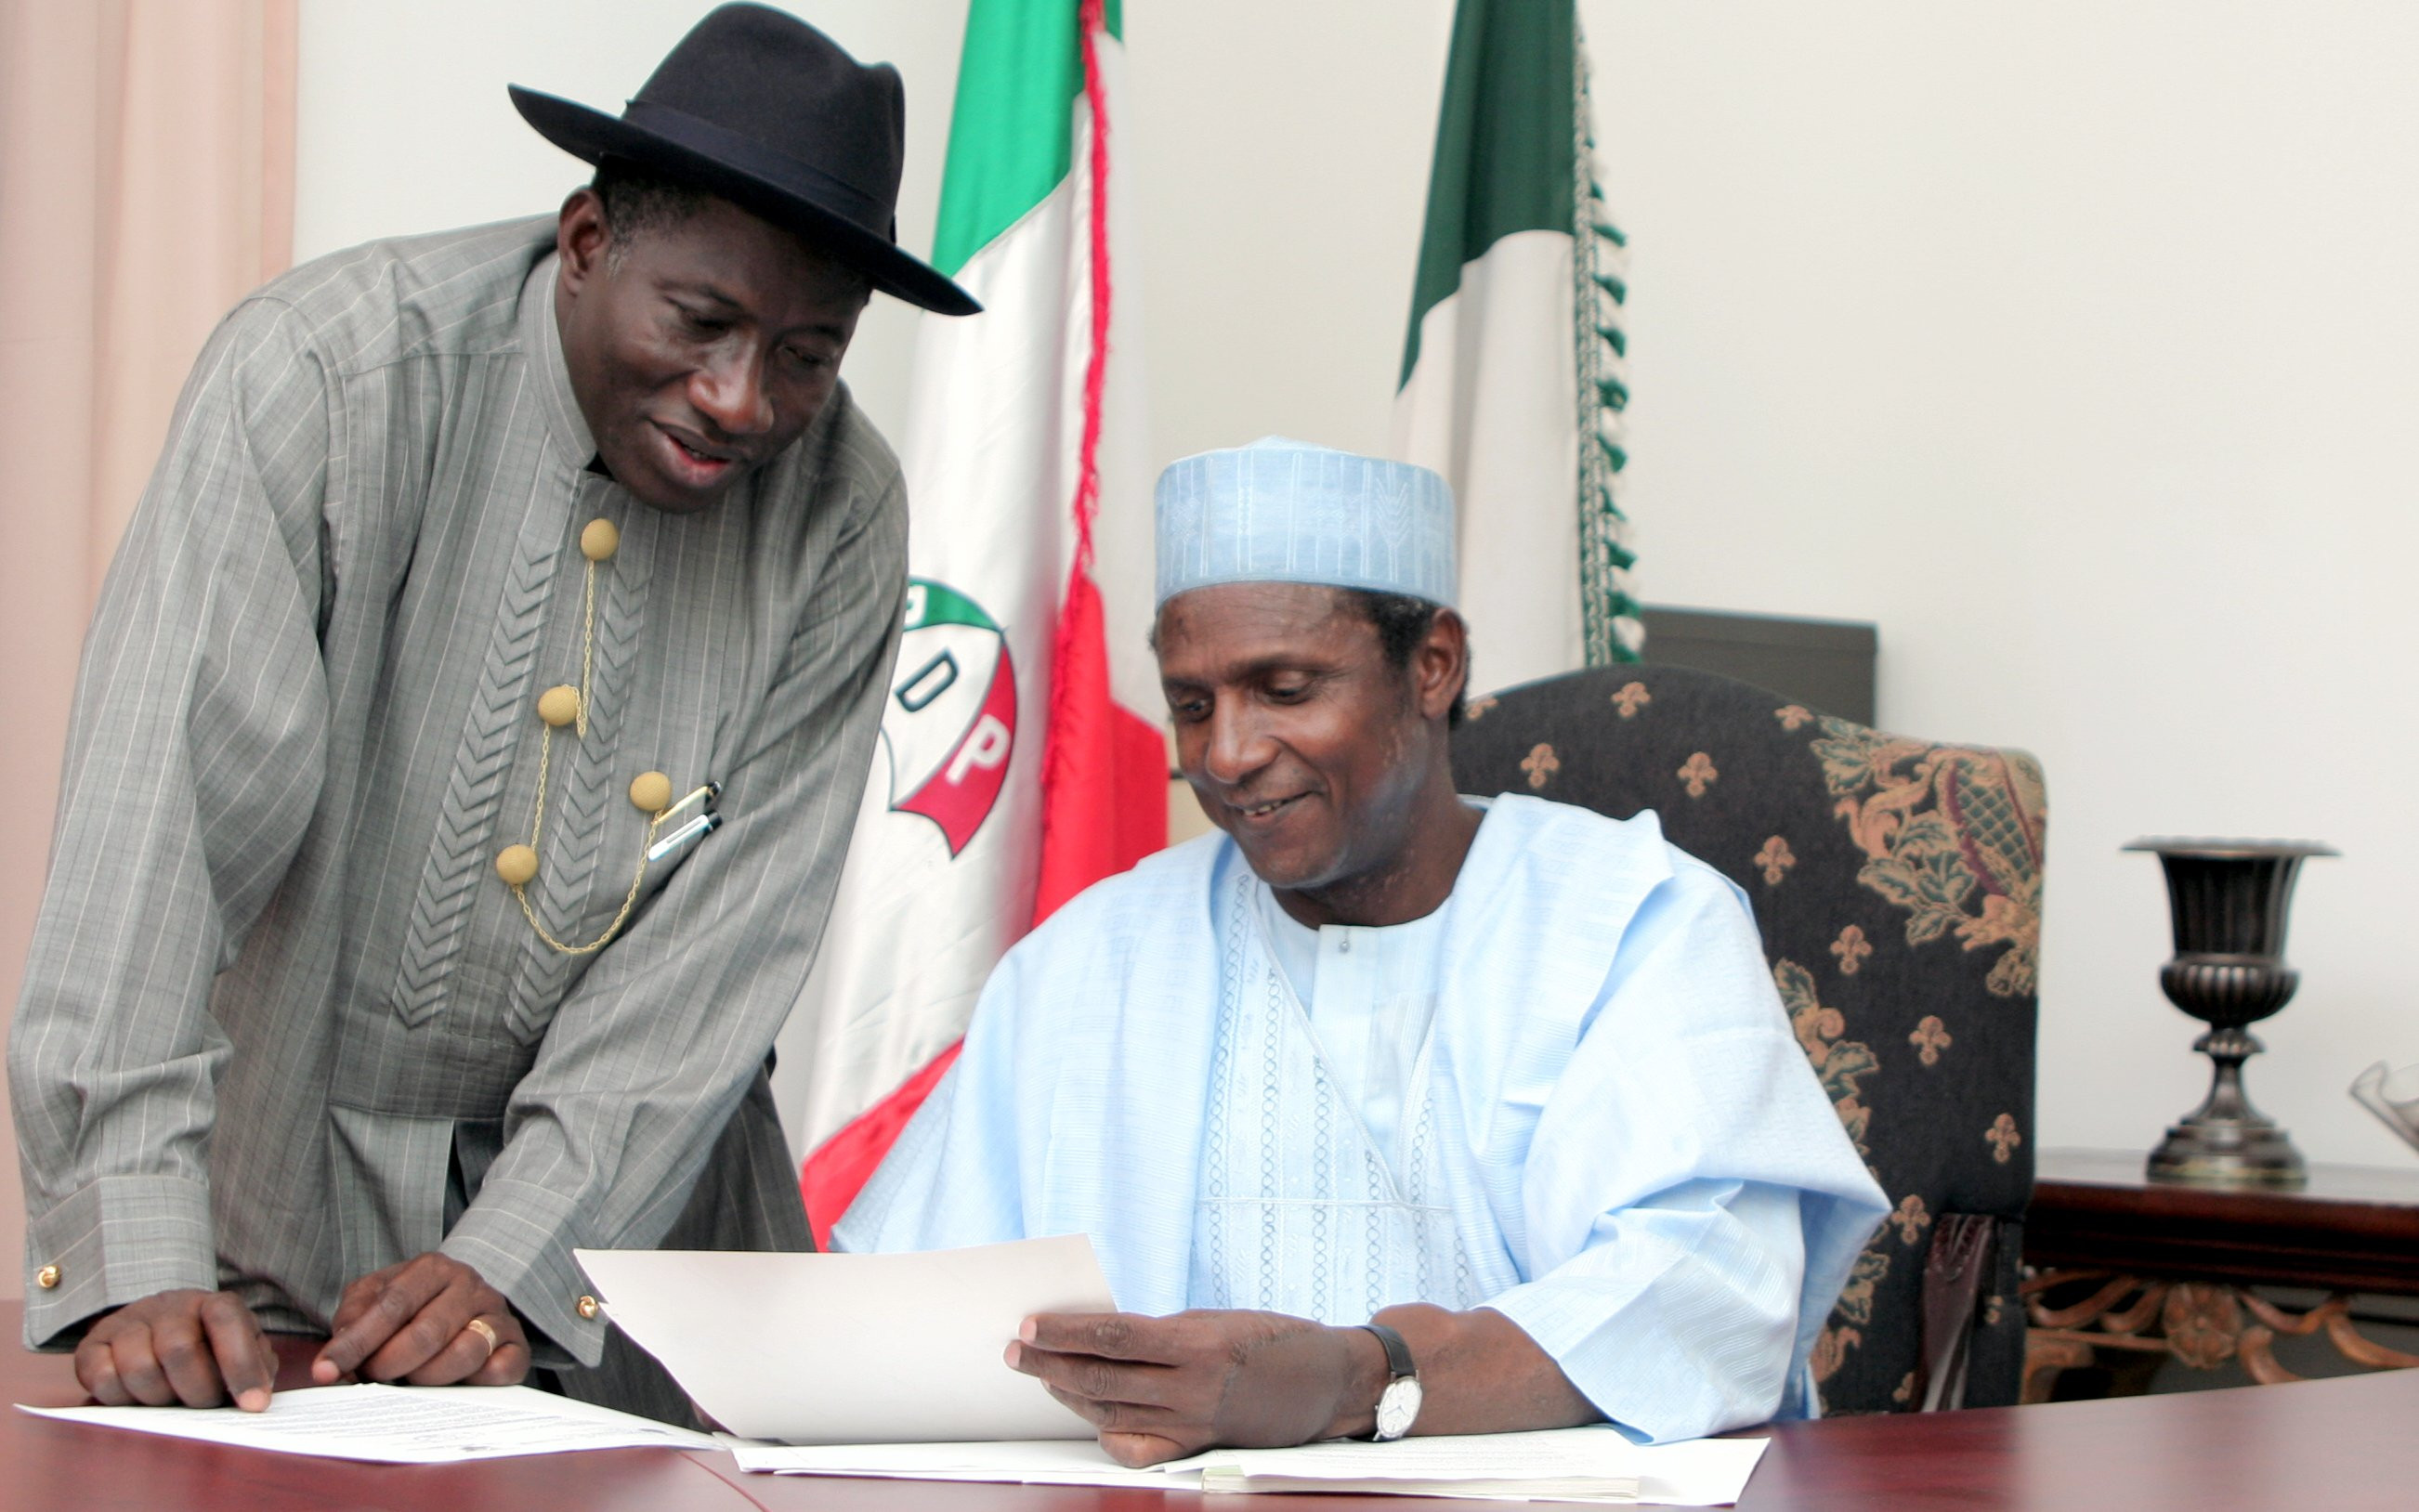 'He was a selfless leader who placed national interest above personal and ethnic gains' - Goodluck Jonathan pays tribute to his ex-president Umaru Musa Yar'Adua who died 9-years ago